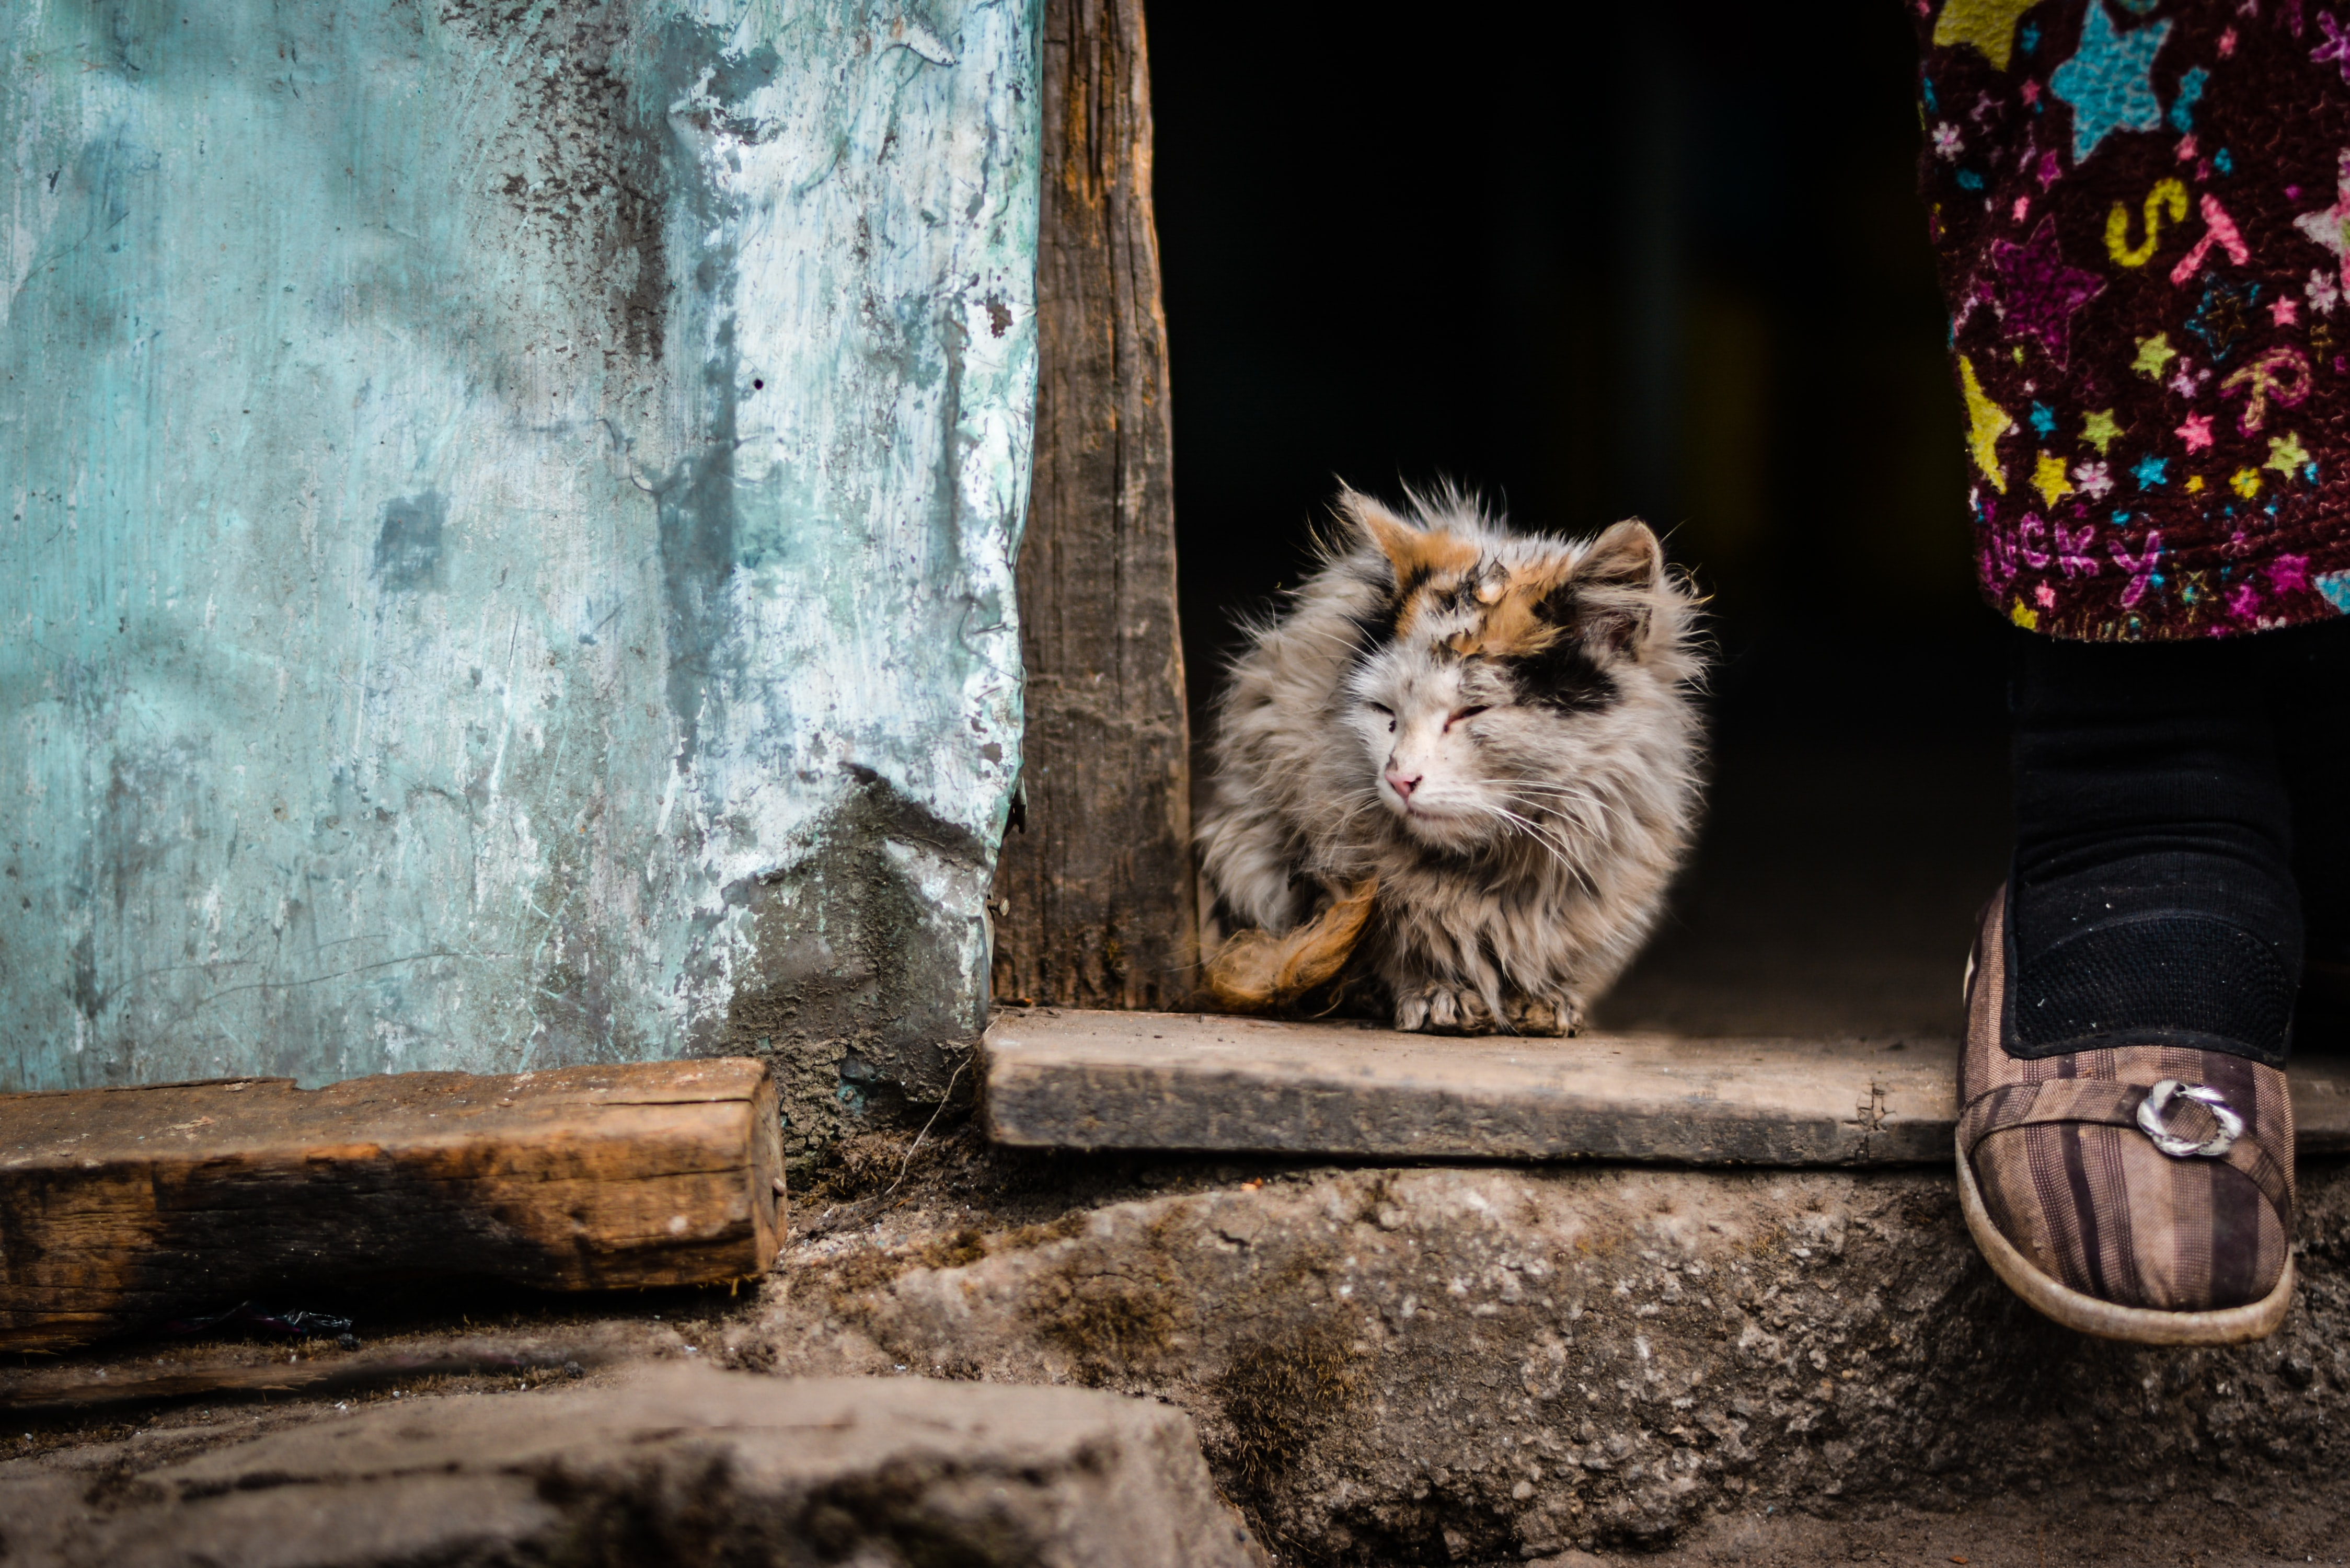 A fluffy cat sitting on the threshold of an old house next to a person's foot